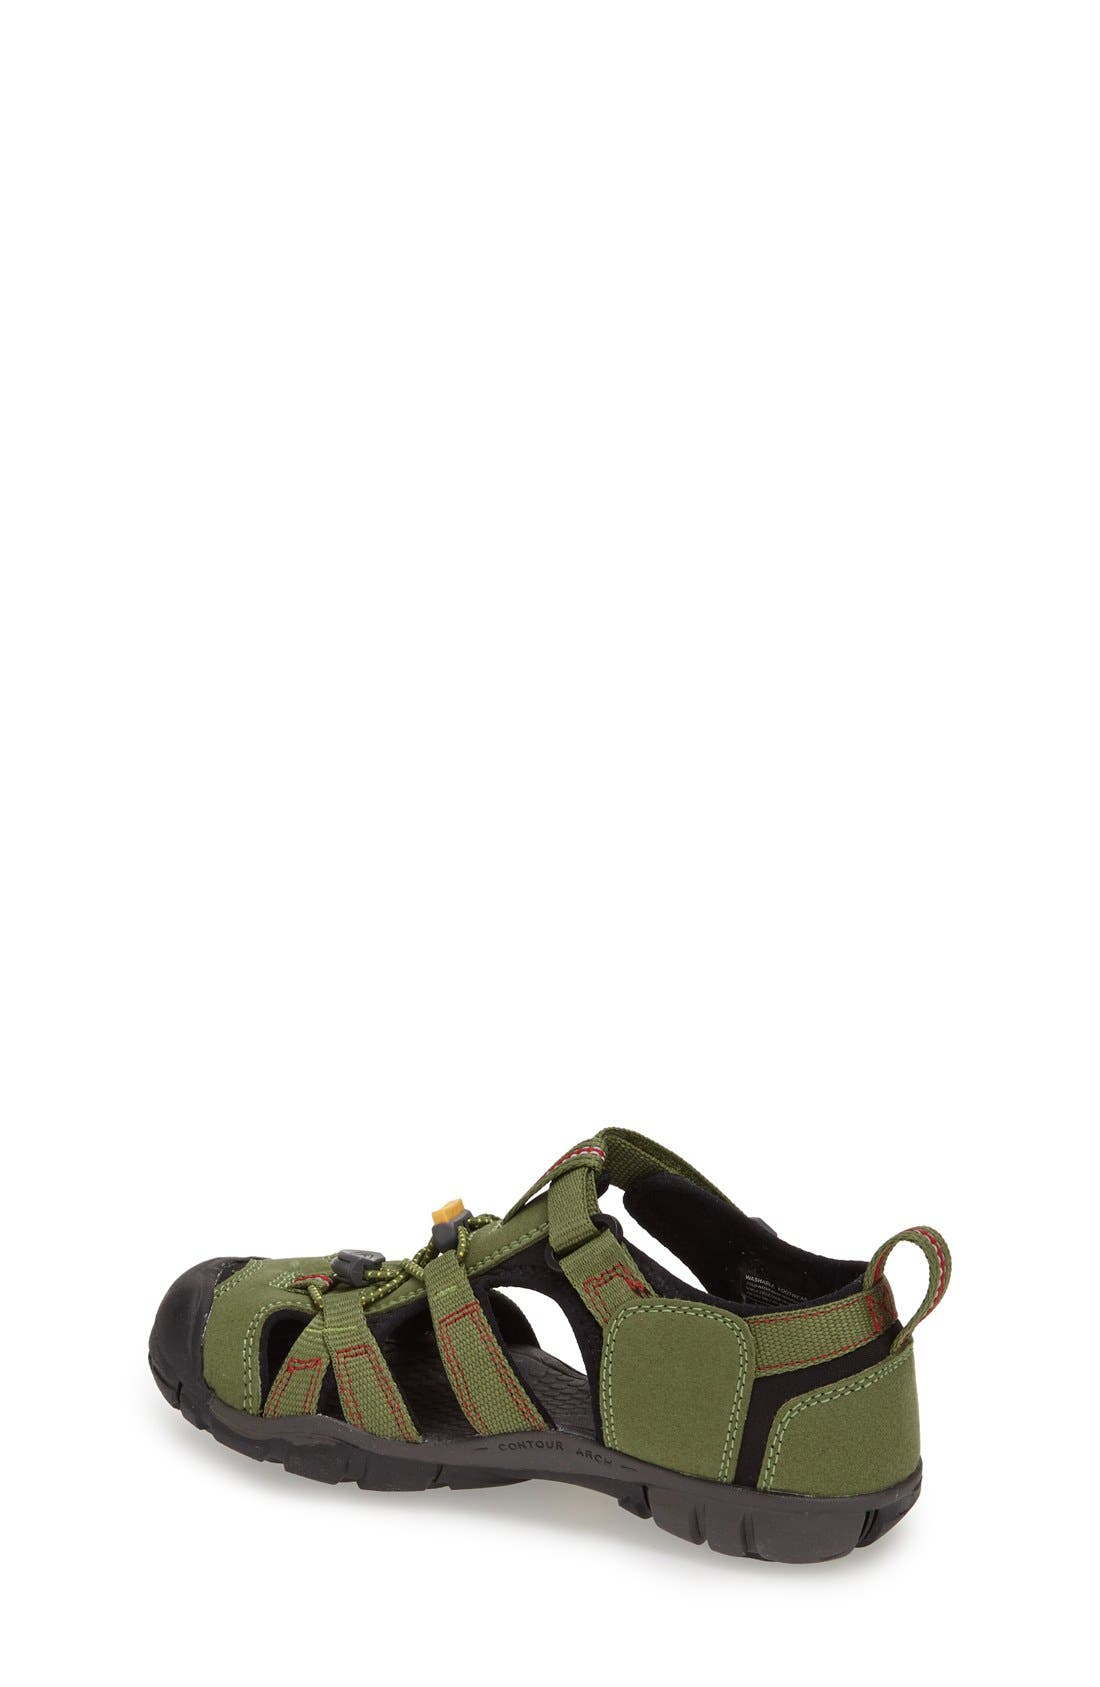 Alternate Image 2  - Keen 'Seacamp II' Waterproof Sandal (Baby, Walker, Toddler, Little Kid & Big Kid)